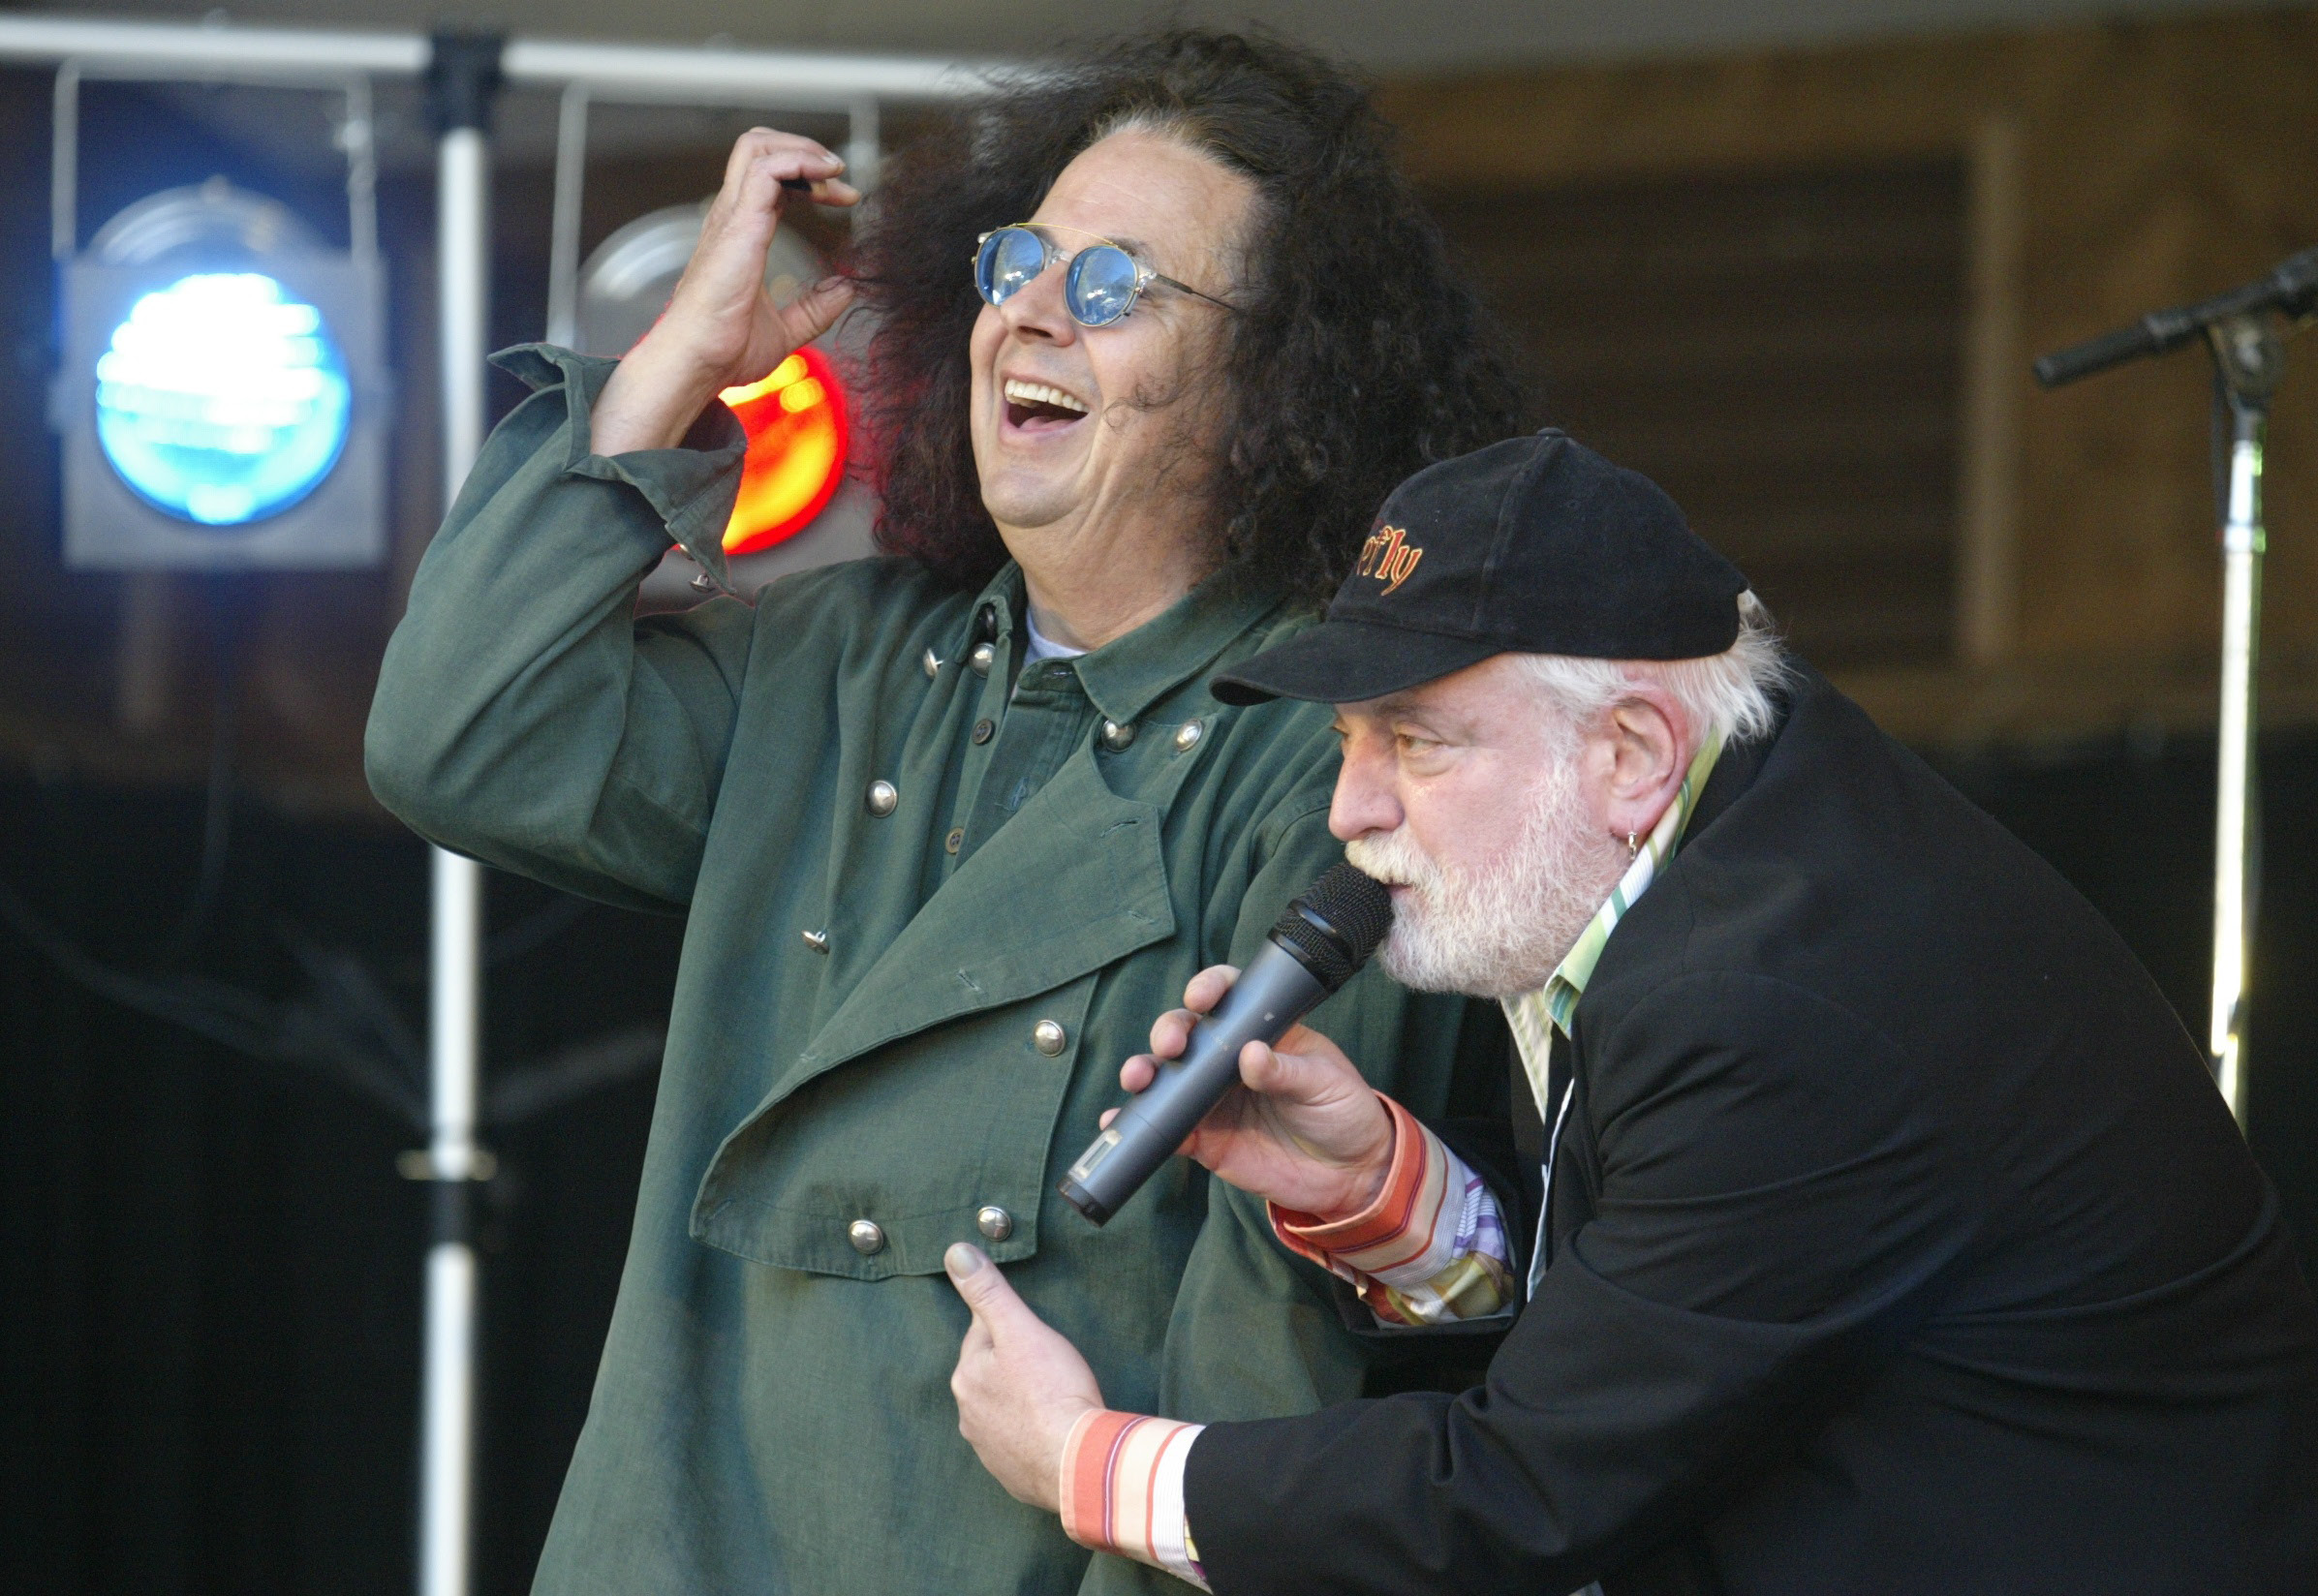 Howard Kaylan, right, pokes fun at his Turtles partner, Mark Volman, during their concert at Hubbard Park for the Meriden Daffodil Festival on pril 29, 2006.